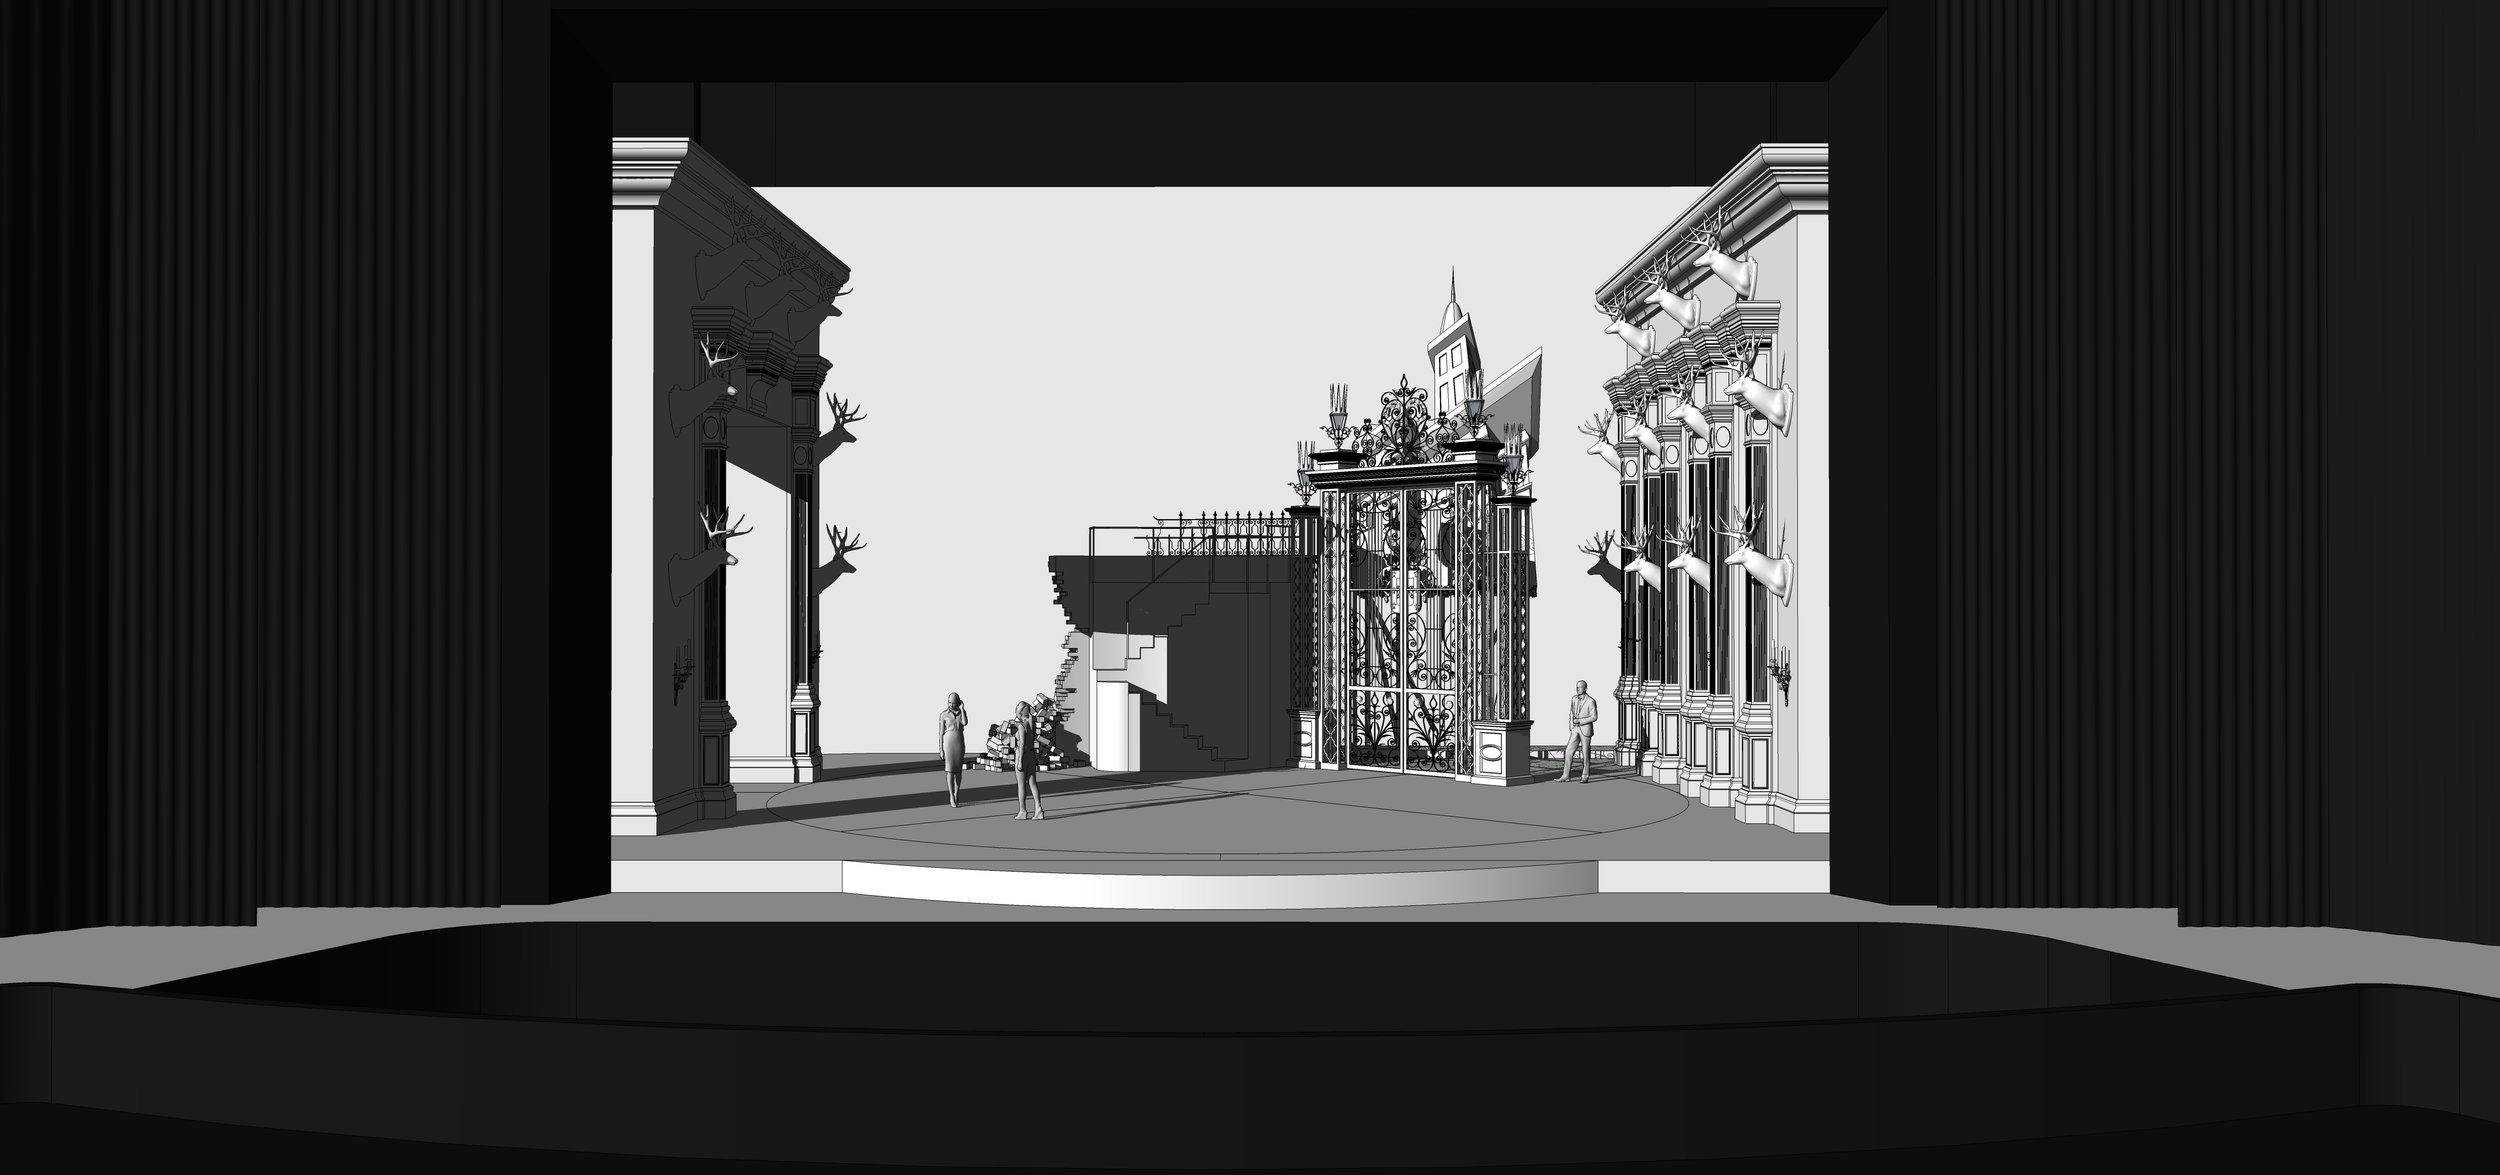 FINAL DESIGN | Act 1 Scene 2 - The Grounds Near Ravenswood Castle - SketchUp Model